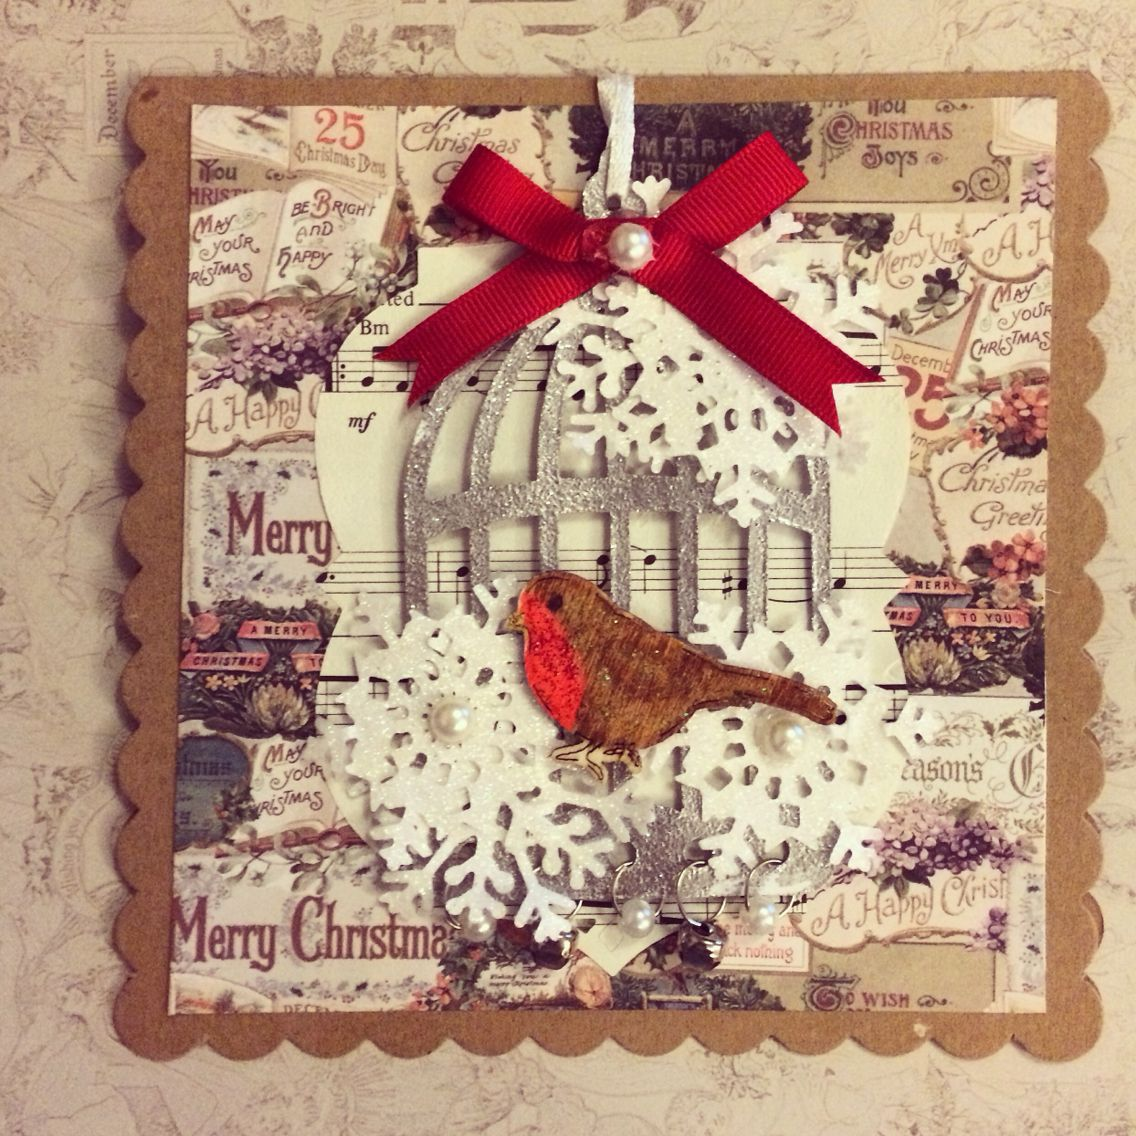 Birdcage Christmas card made by me with Tim Holtz birdcage die and docrafts Victorian Christmas papers